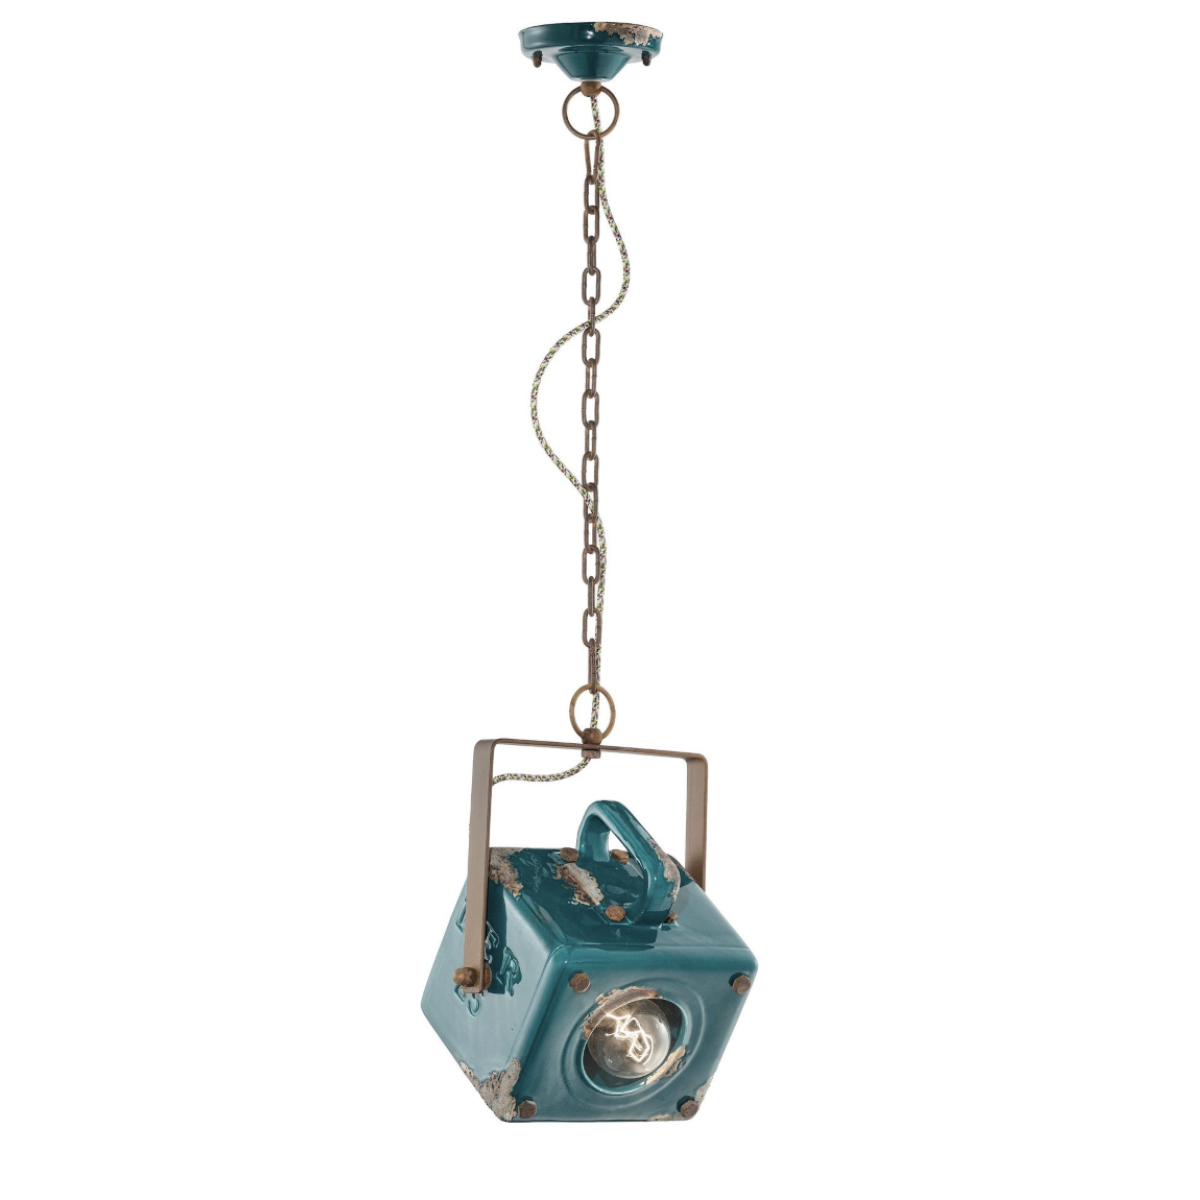 Ferroluce Industrial Pendant Light C1652 | touchGOODS